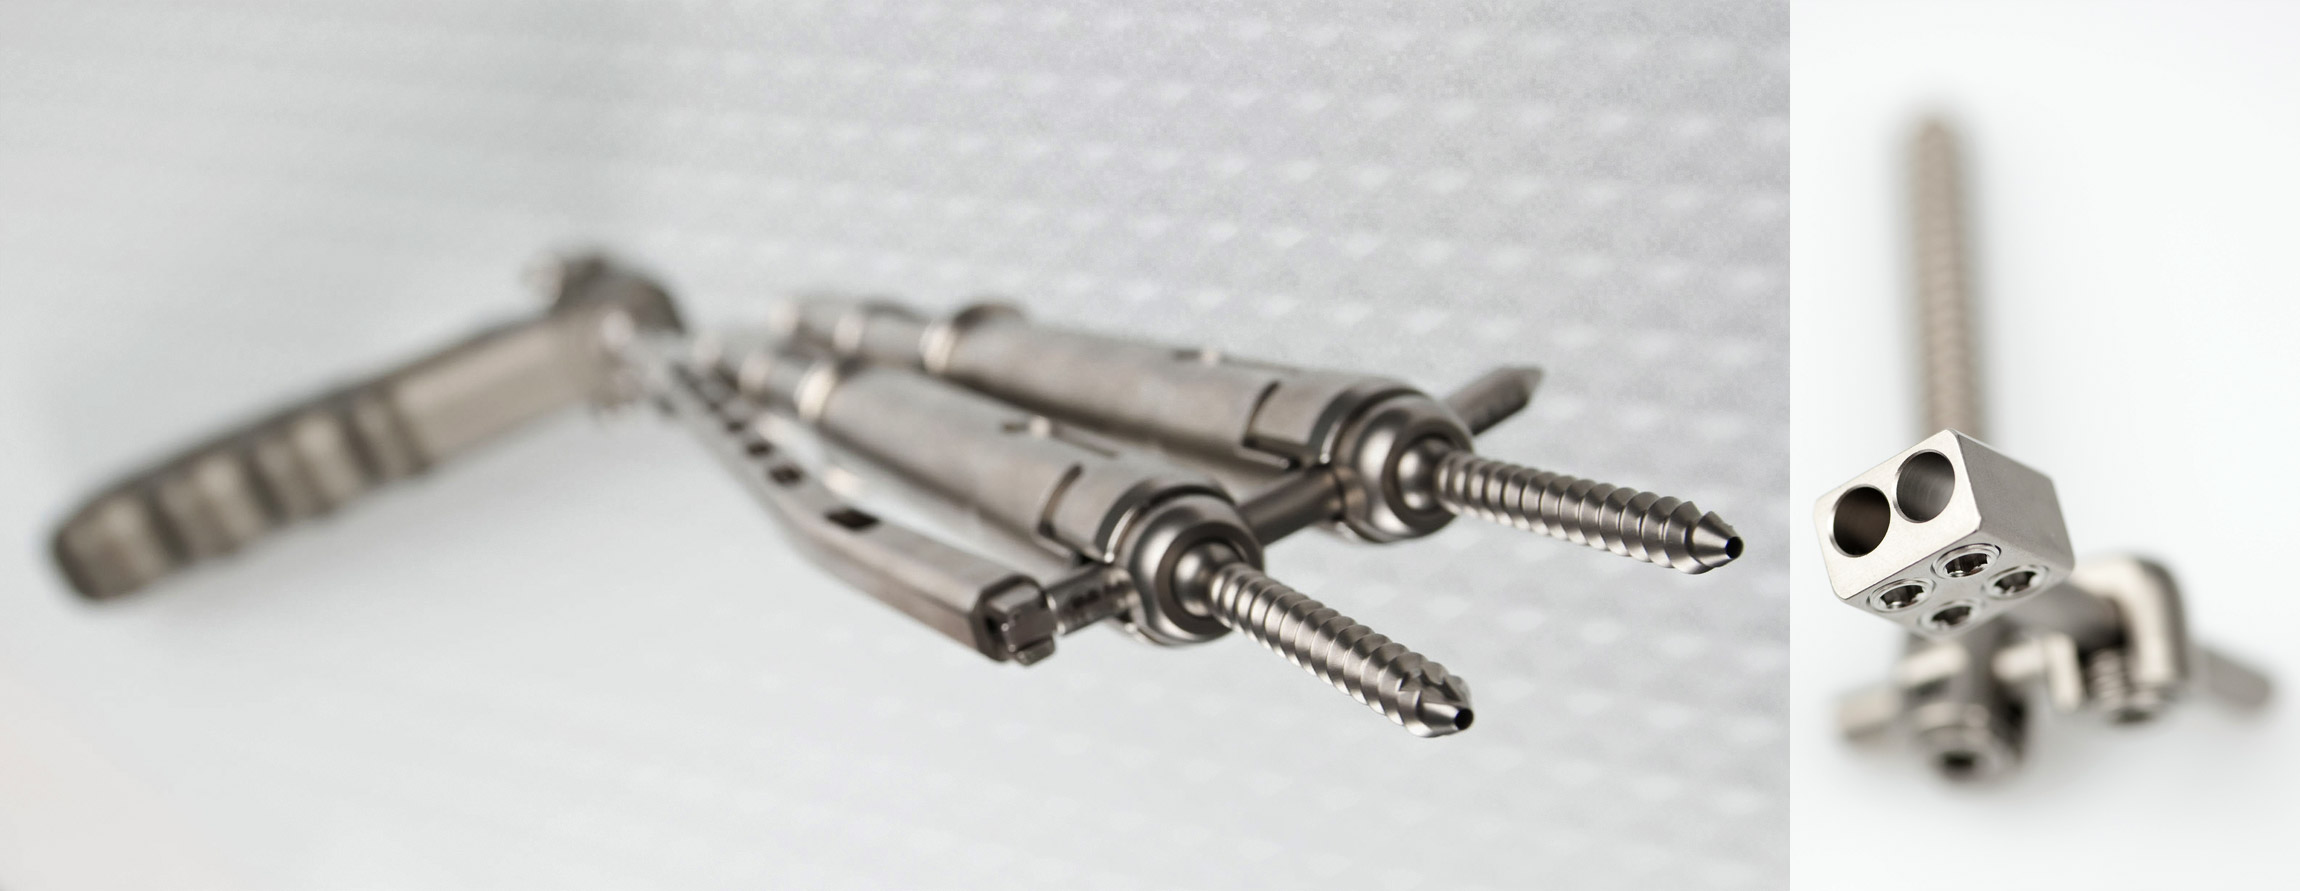 GS Medical USA MIS Cervical Screw System Studio Photography by Josh Sawyer - Graphic Regime